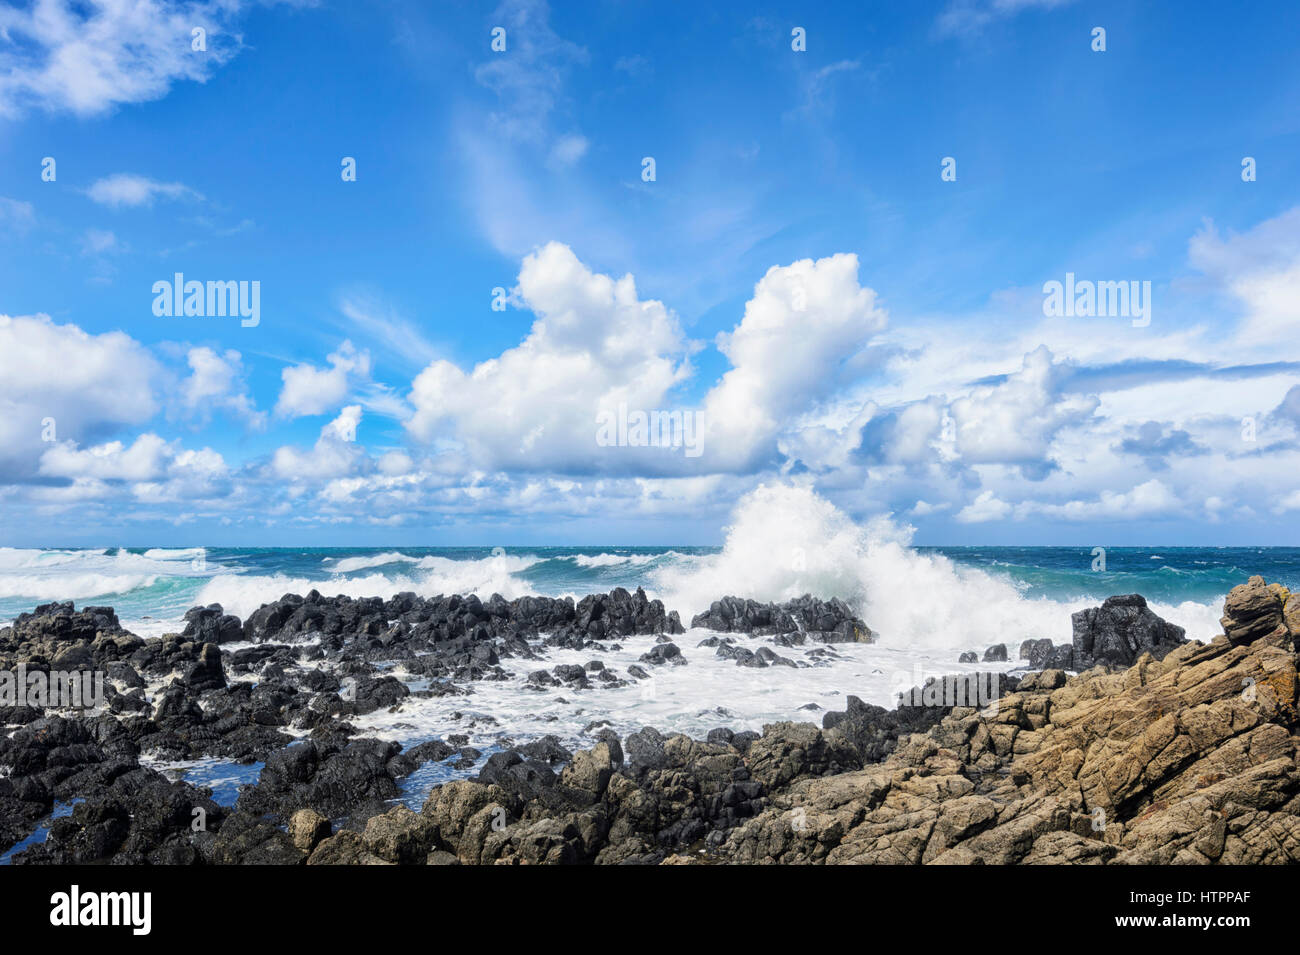 Heavy Seas with large waves at Minnamurra, Illawarra Coast, New South Wales, NSW, Australia - Stock Image